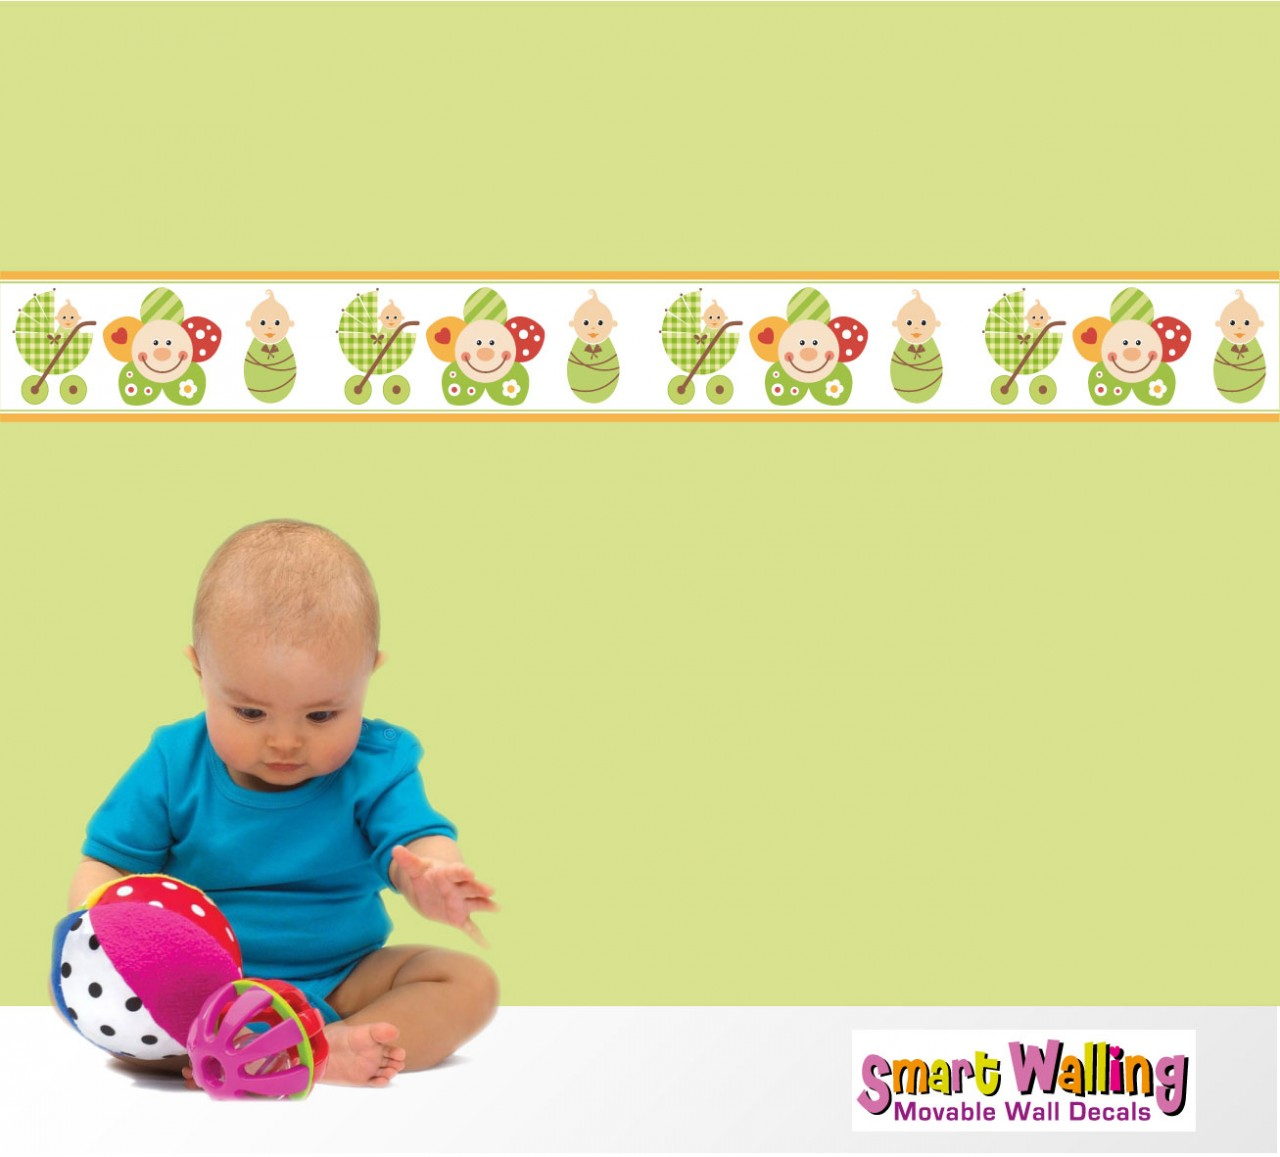 Babies Wallpapers Free Baby Wallpaper Borders